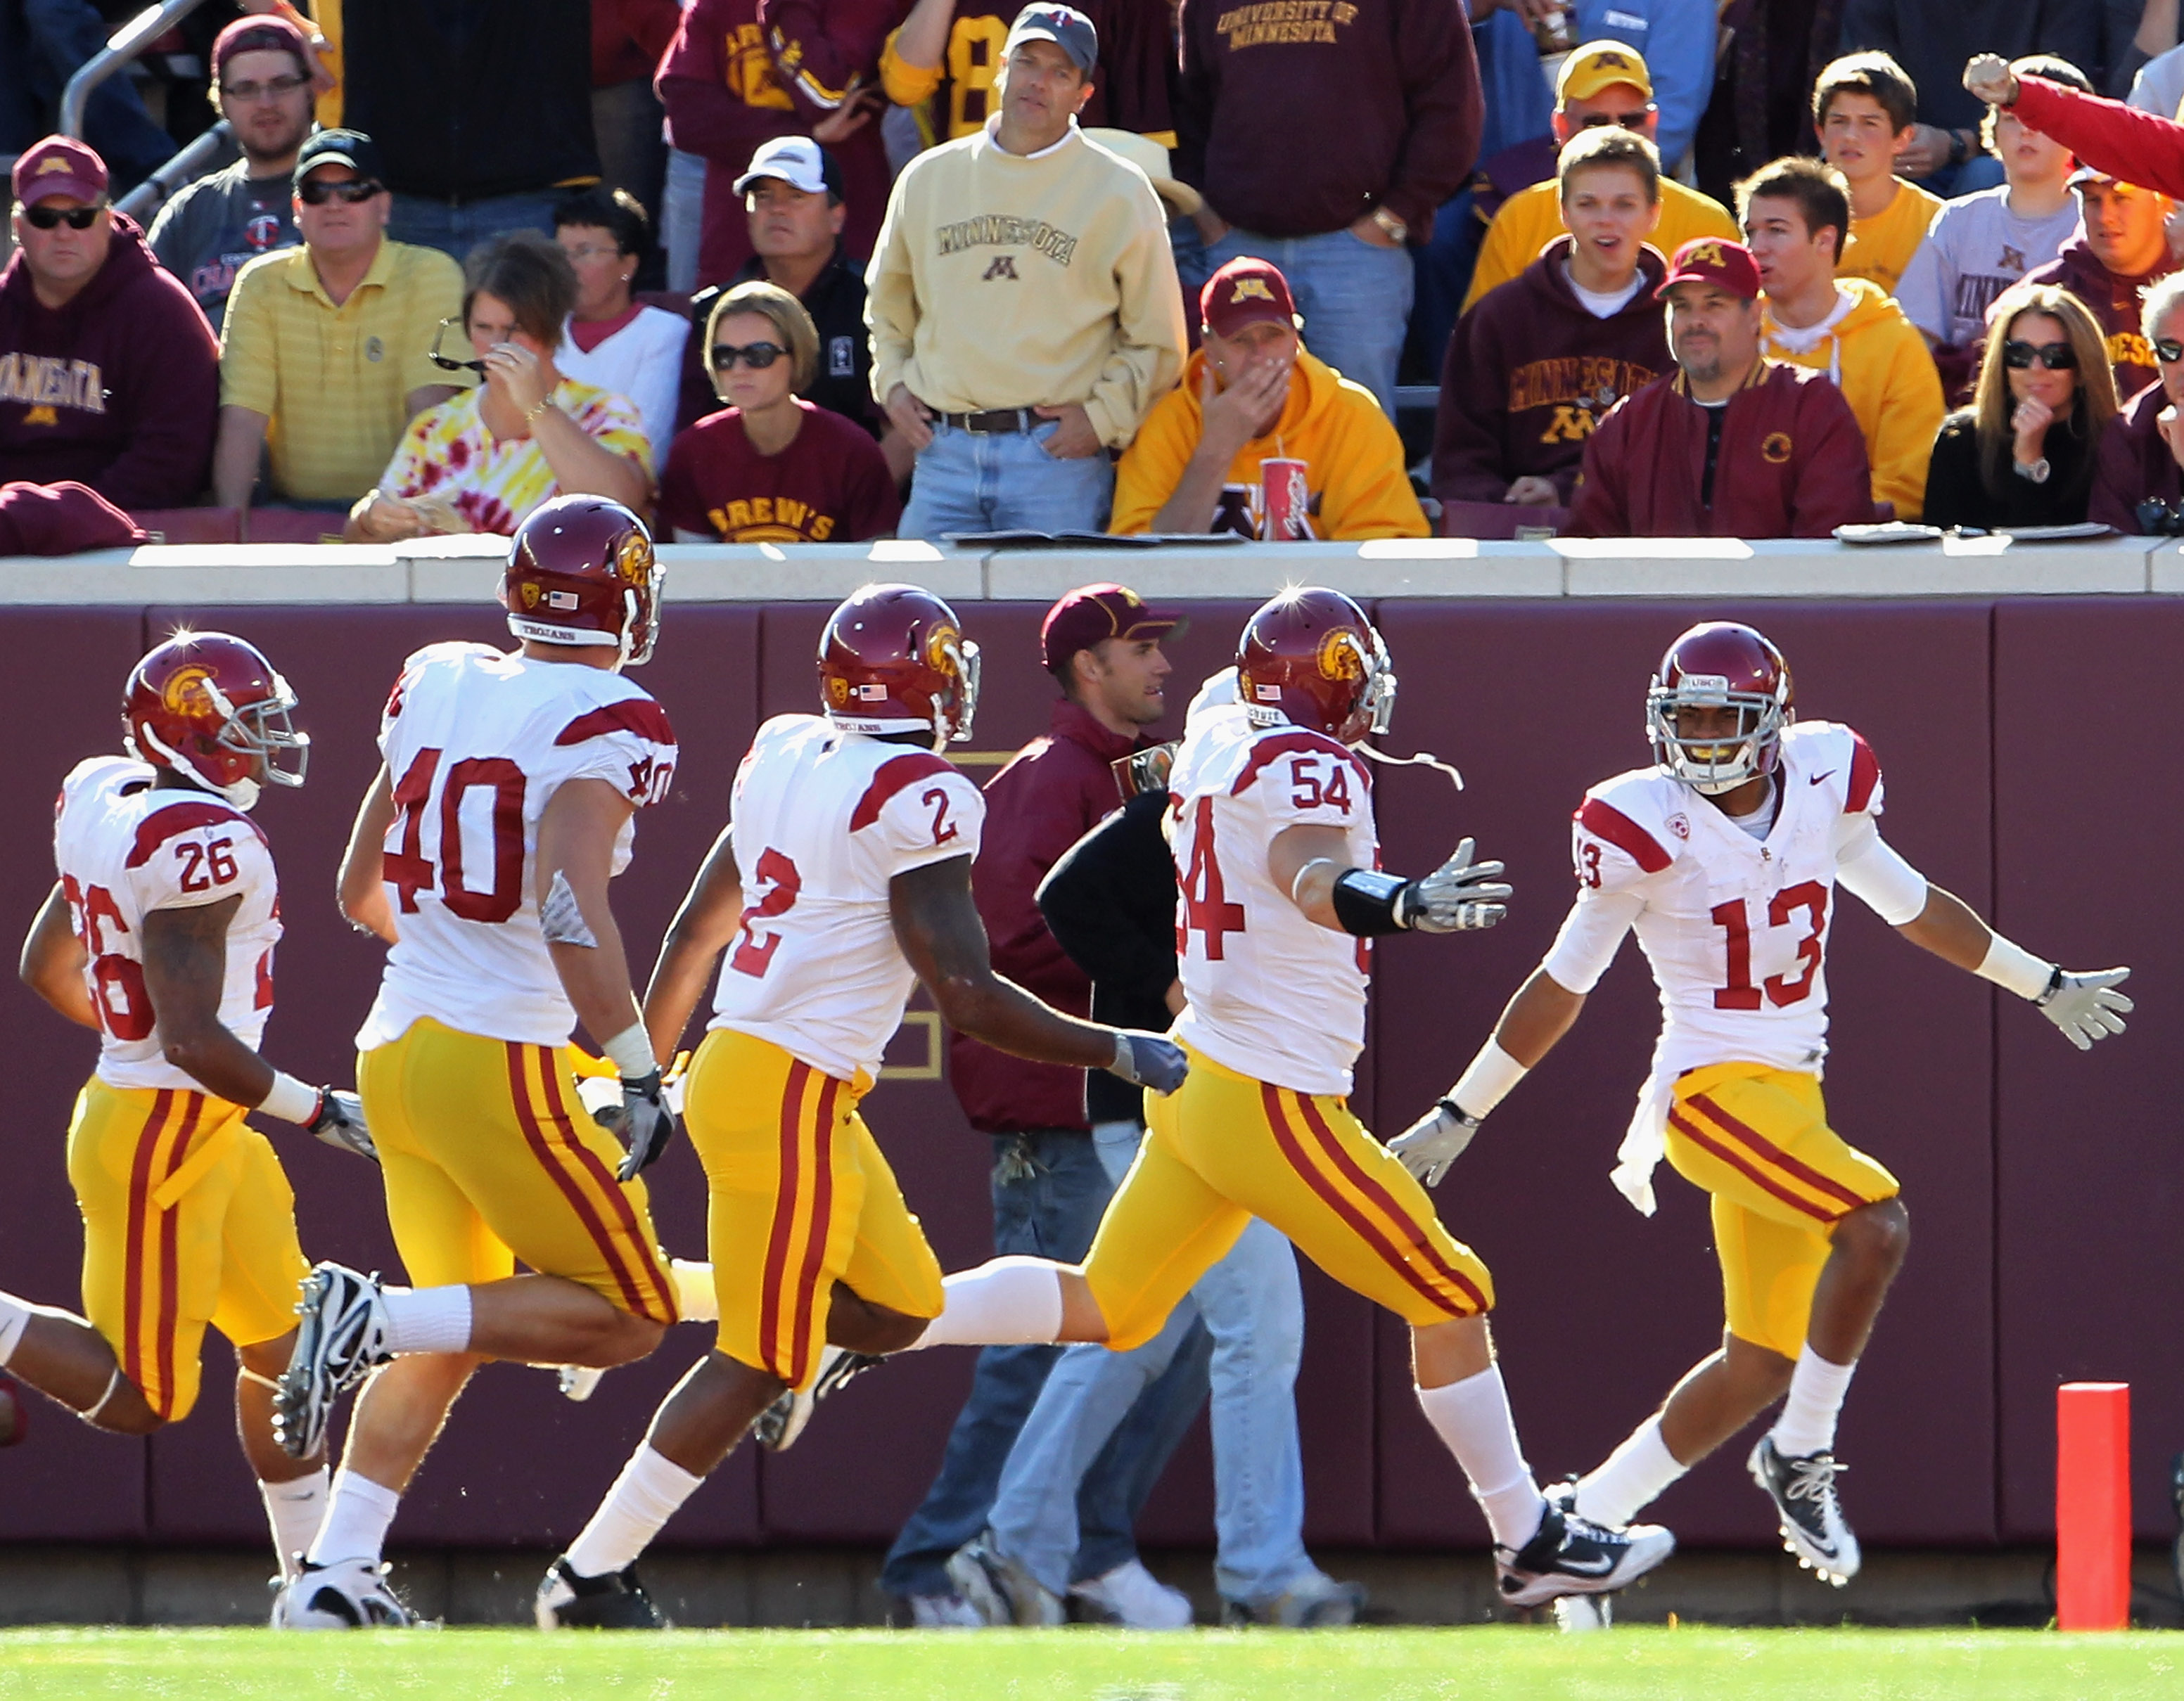 MINNEAPOLIS - SEPTEMBER 18:  Robert Woods #13 of the USC Trojans celebrates with teammates after scoring a touchdown during the game against the Minnesota Golden Gophers on September 18, 2010 at TCF Bank Stadium in Minneapolis, Minnesota.  (Photo by Jamie